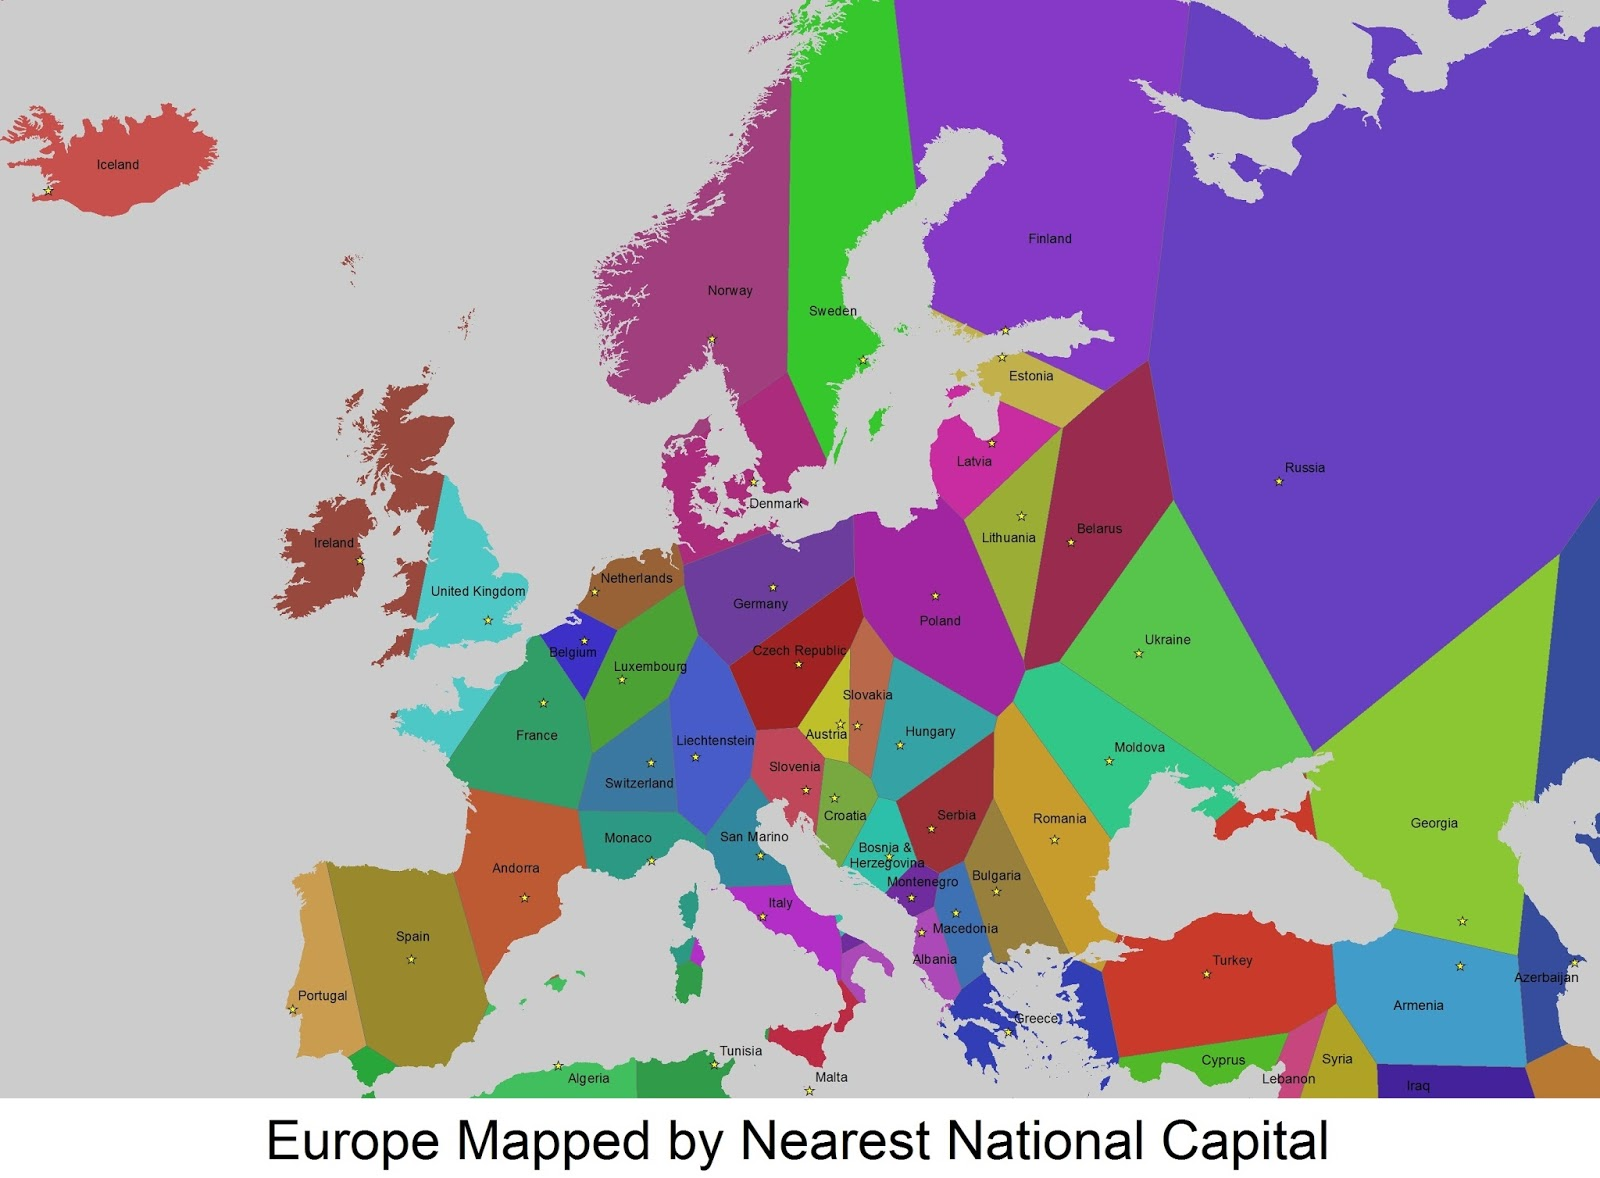 Europe Mapped by Nearest National Capital